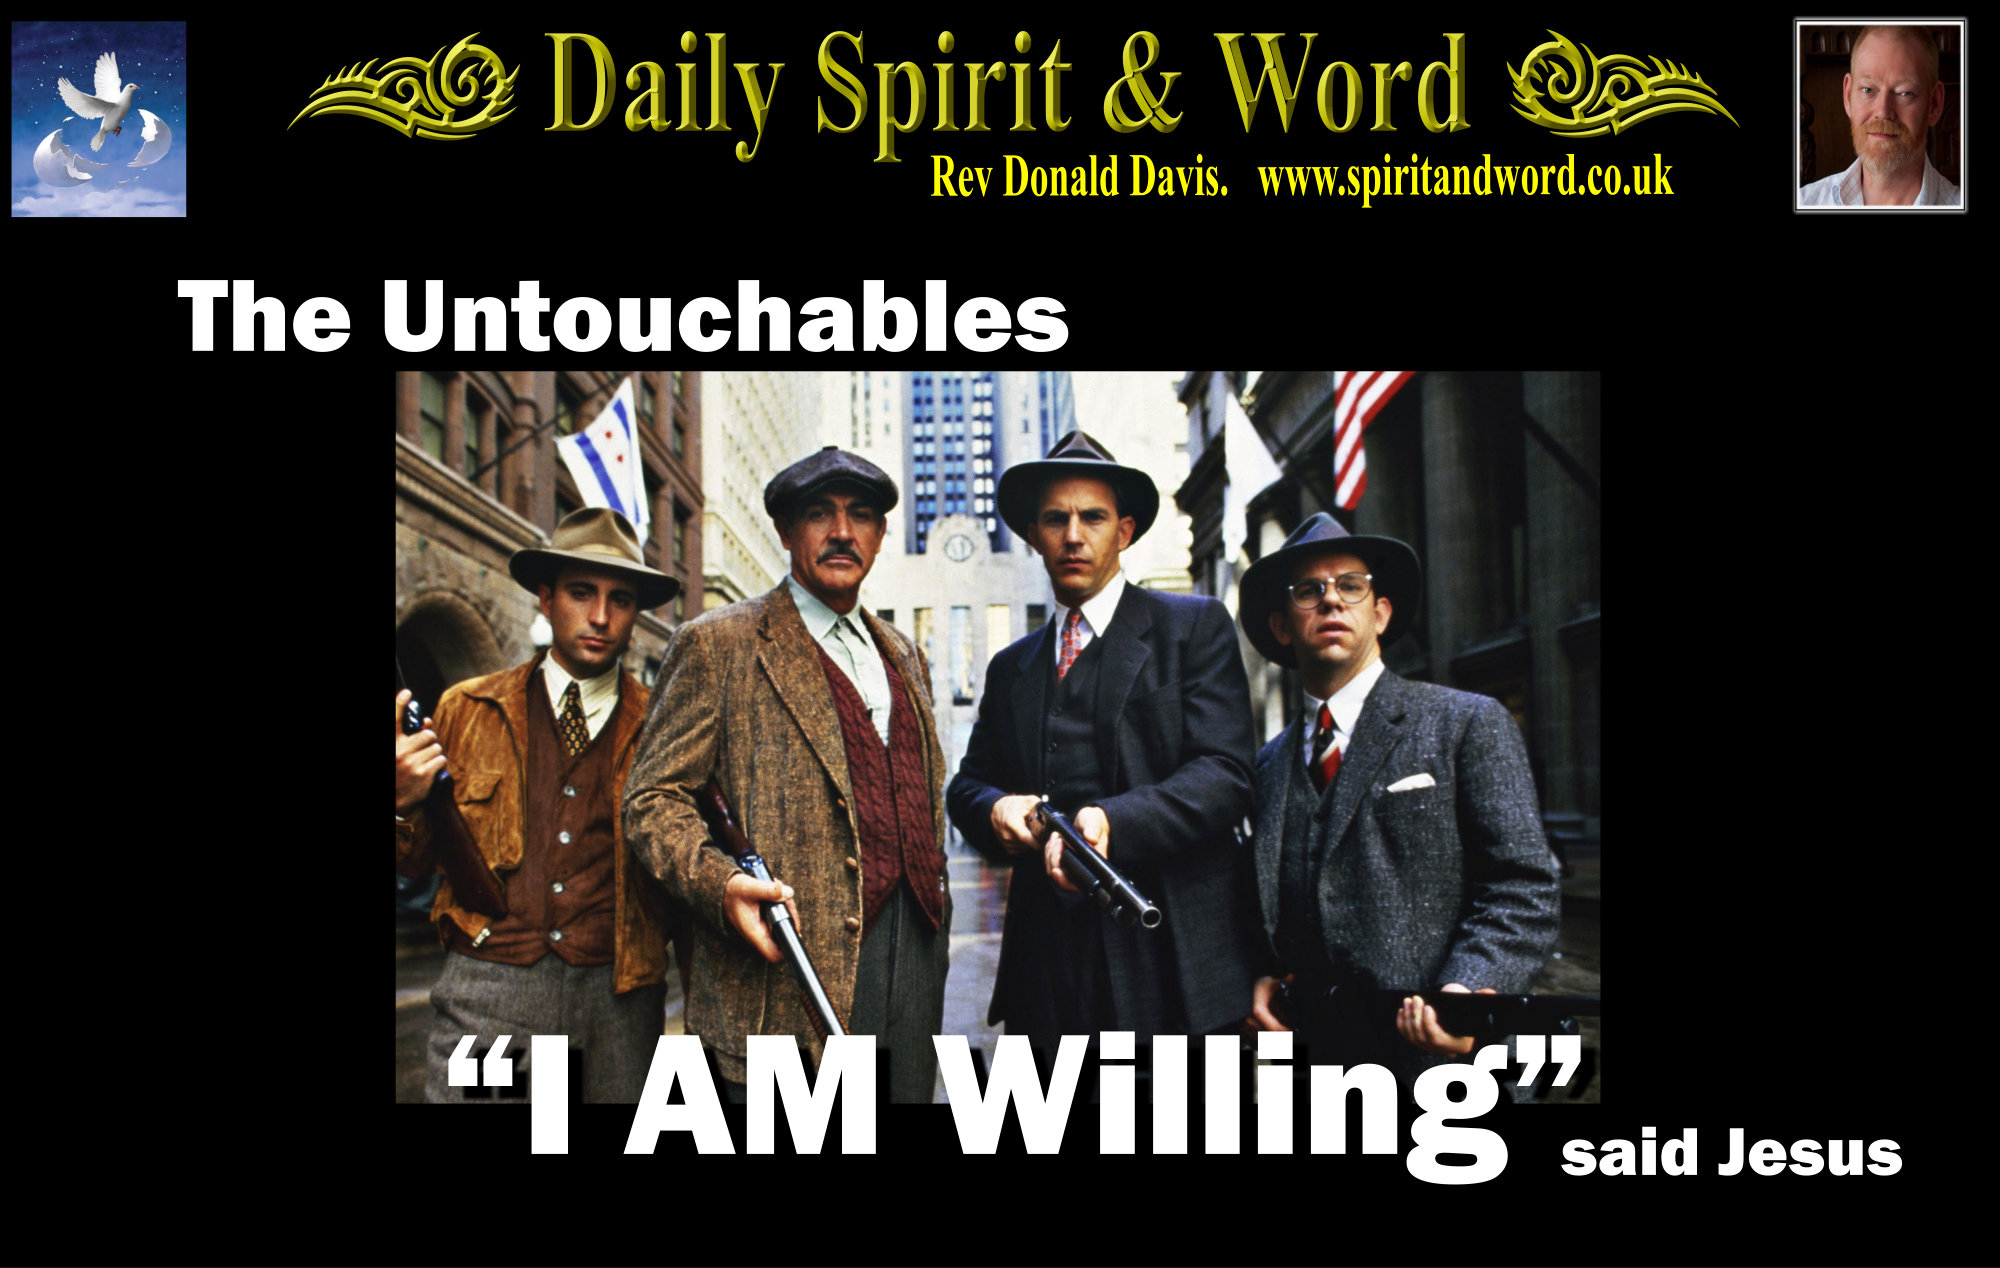 Jesus touches the untouchables and makes them clean